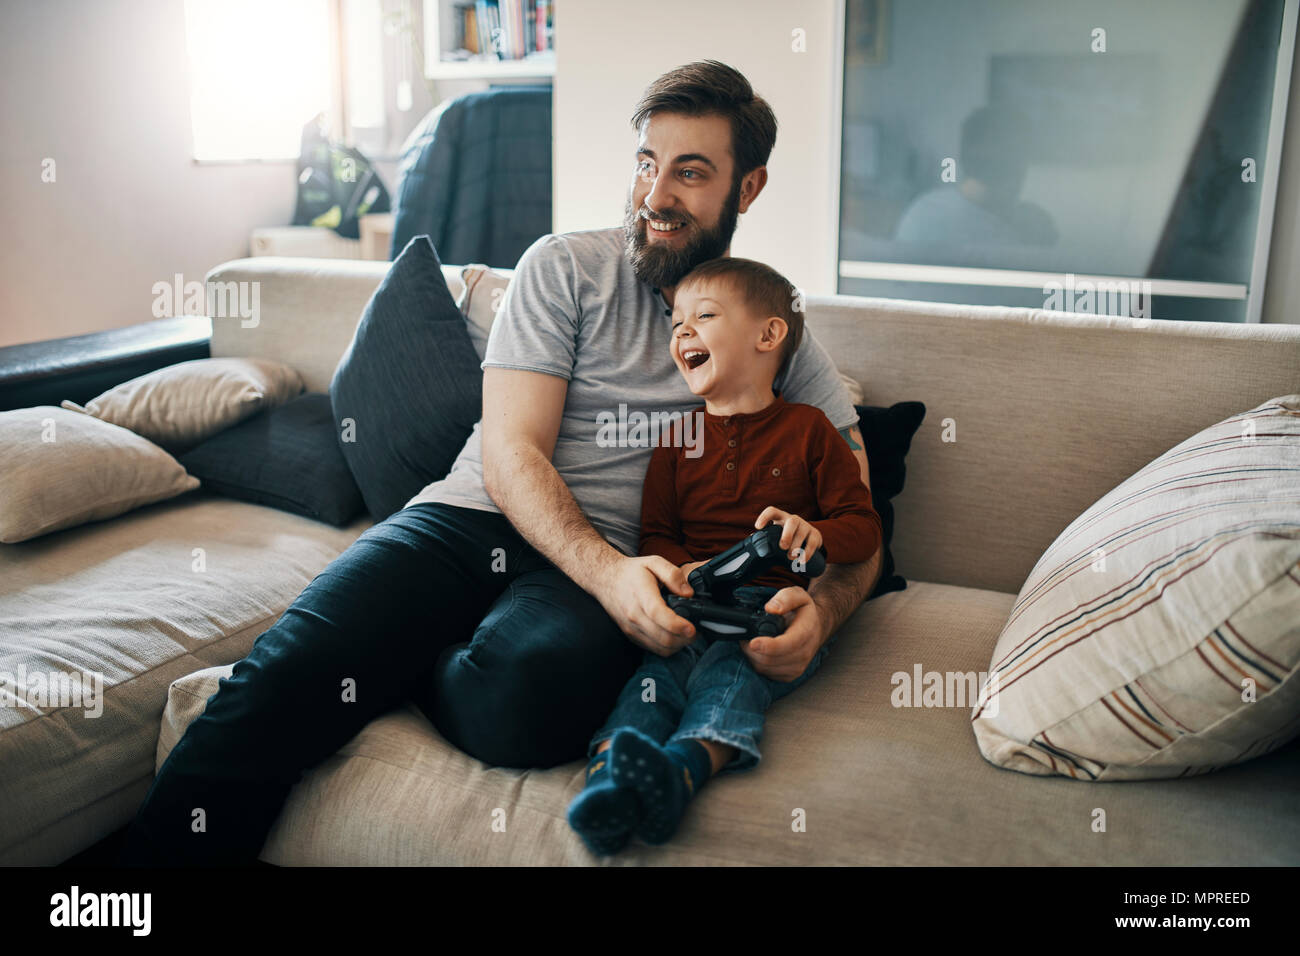 Happy father and son sitting together on the couch playing computer game - Stock Image